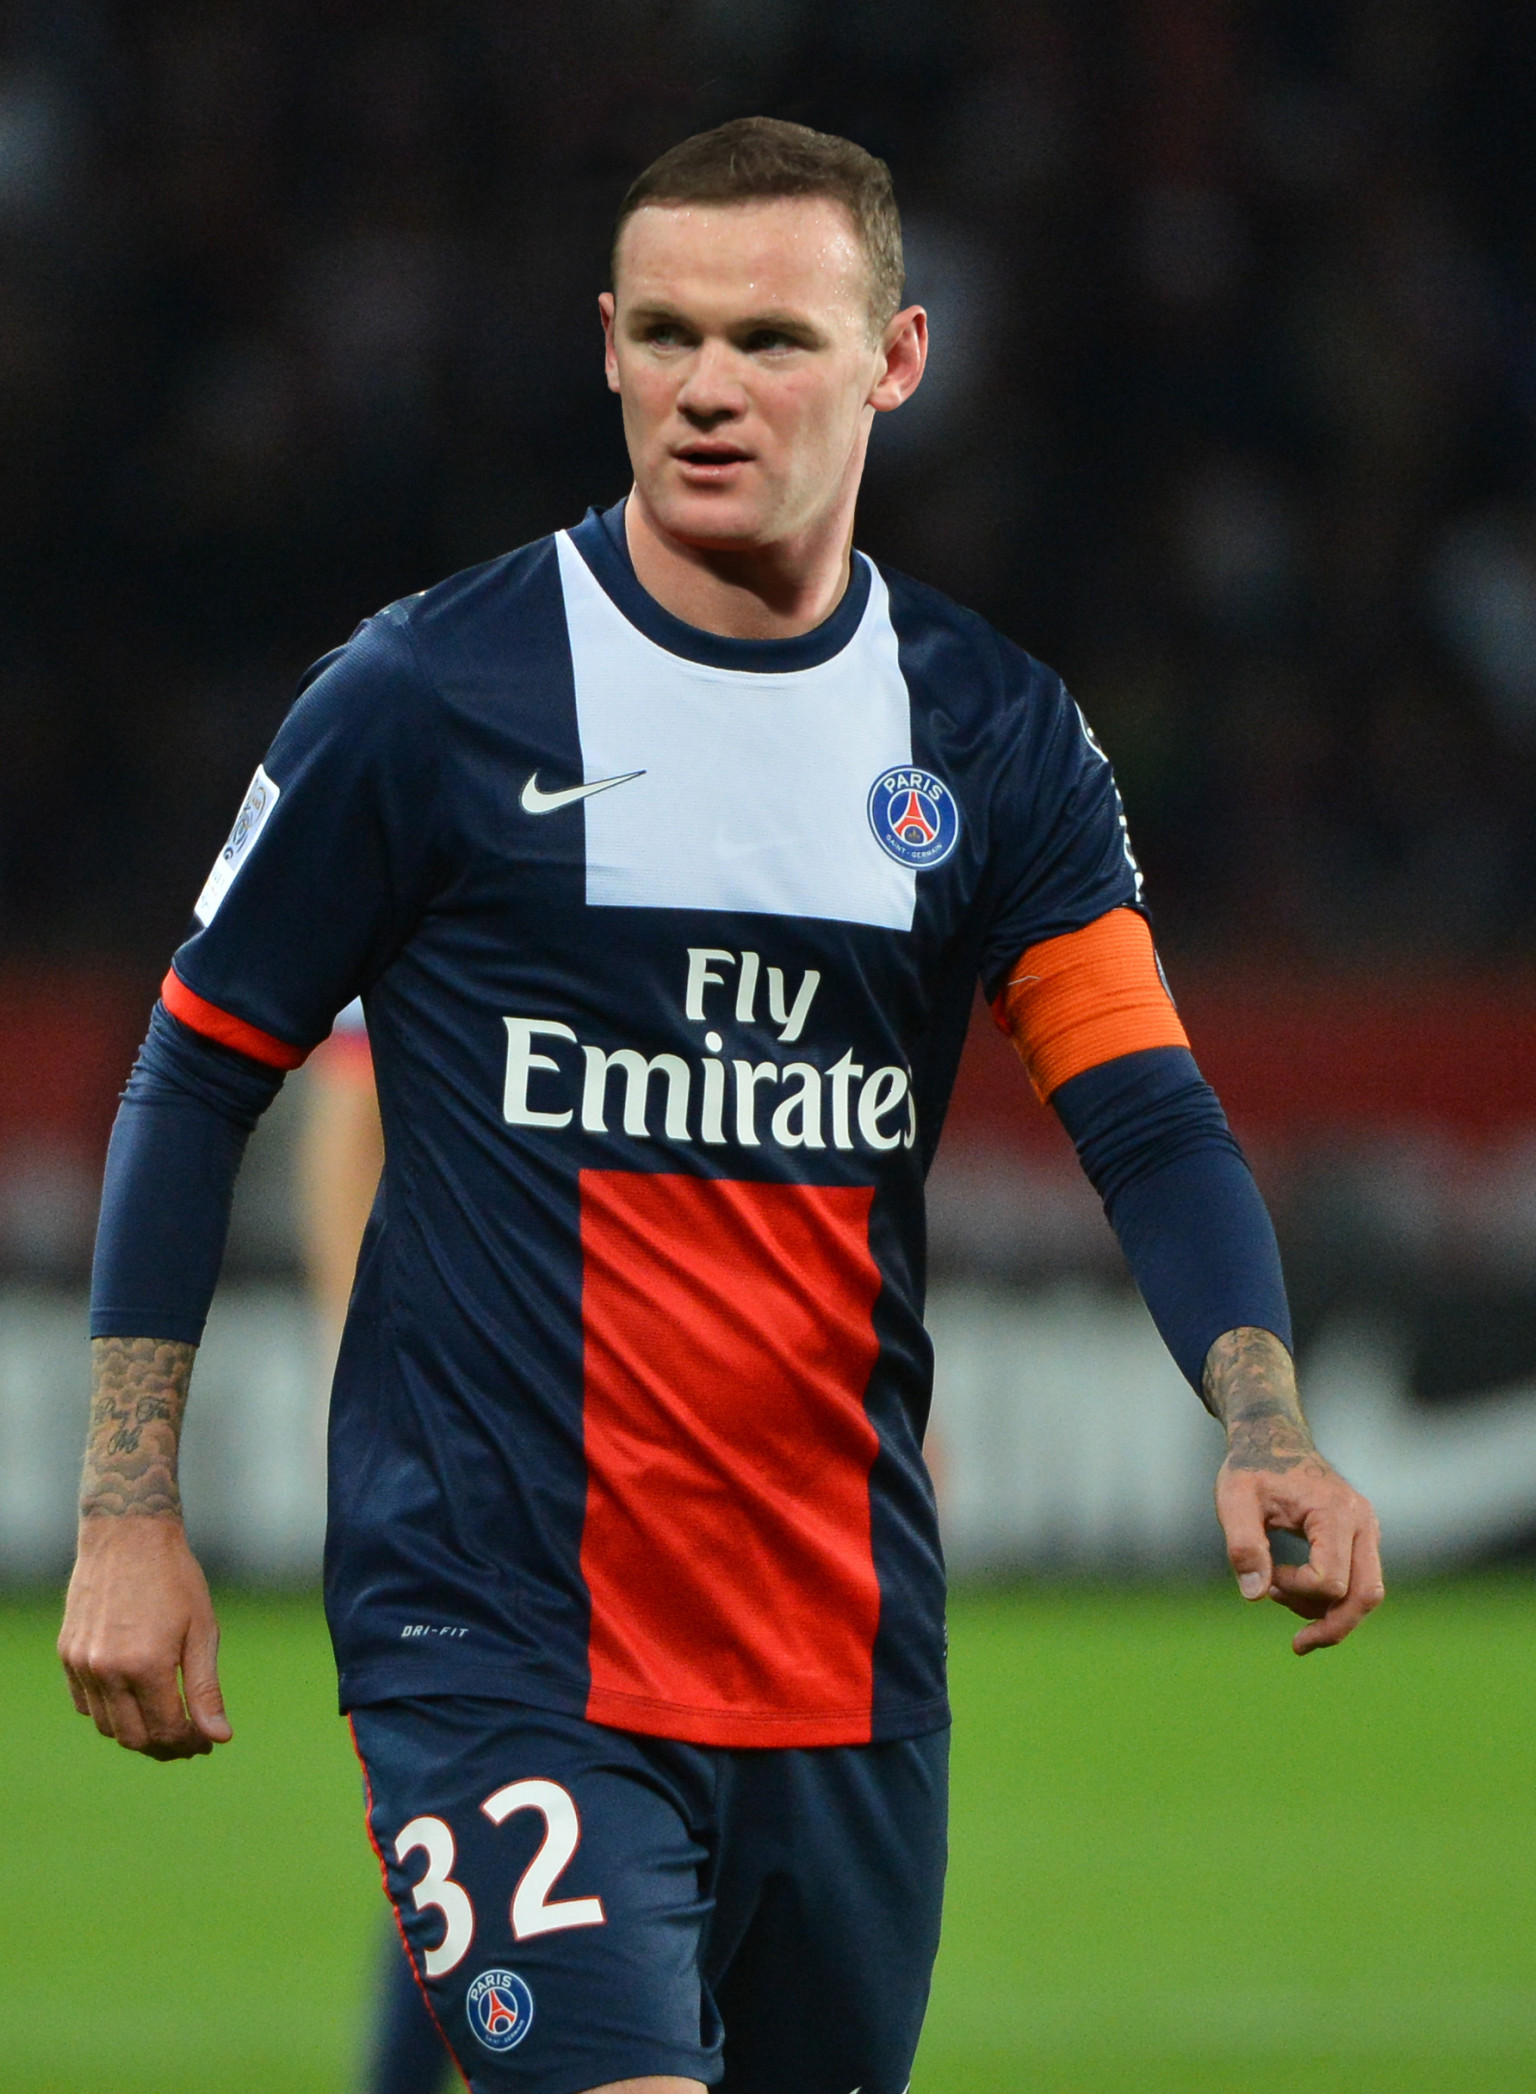 Psg Approach Manchester United About Signing Wayne Rooney